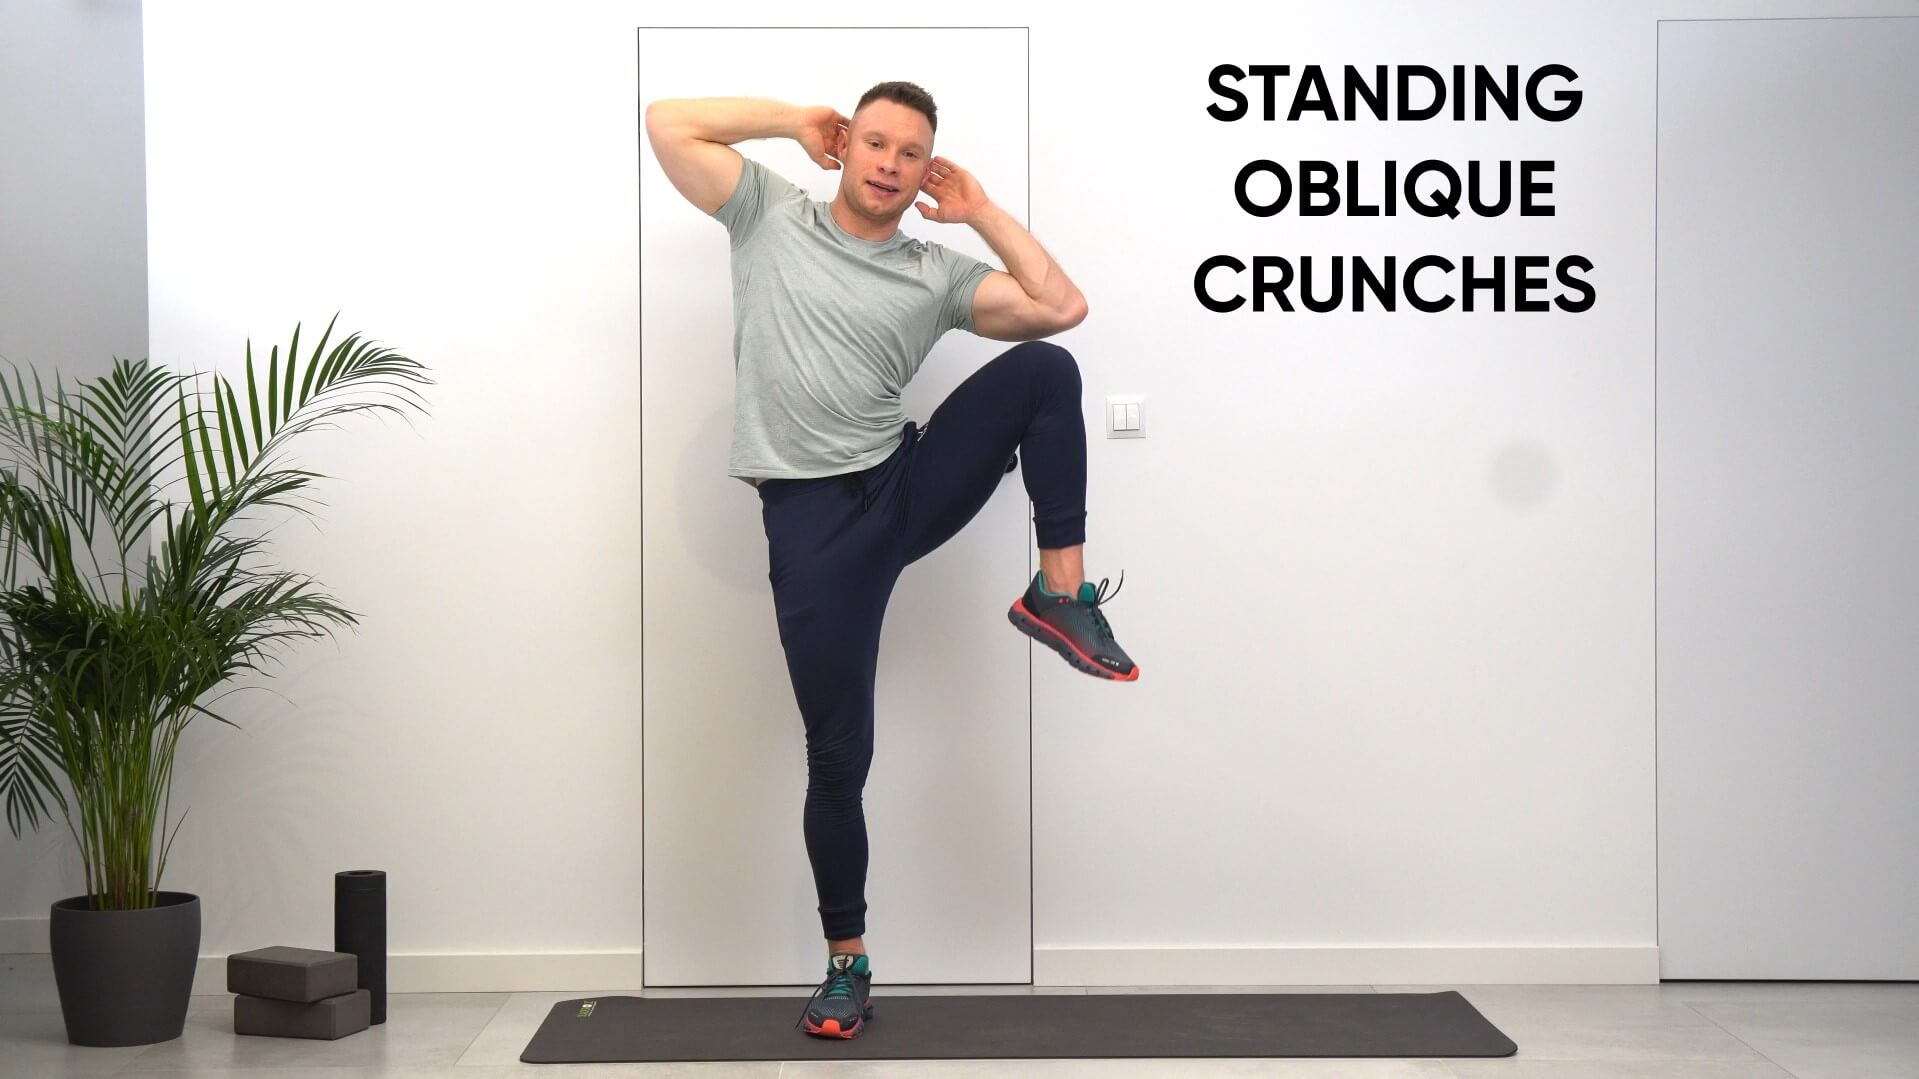 Standing oblique crunches